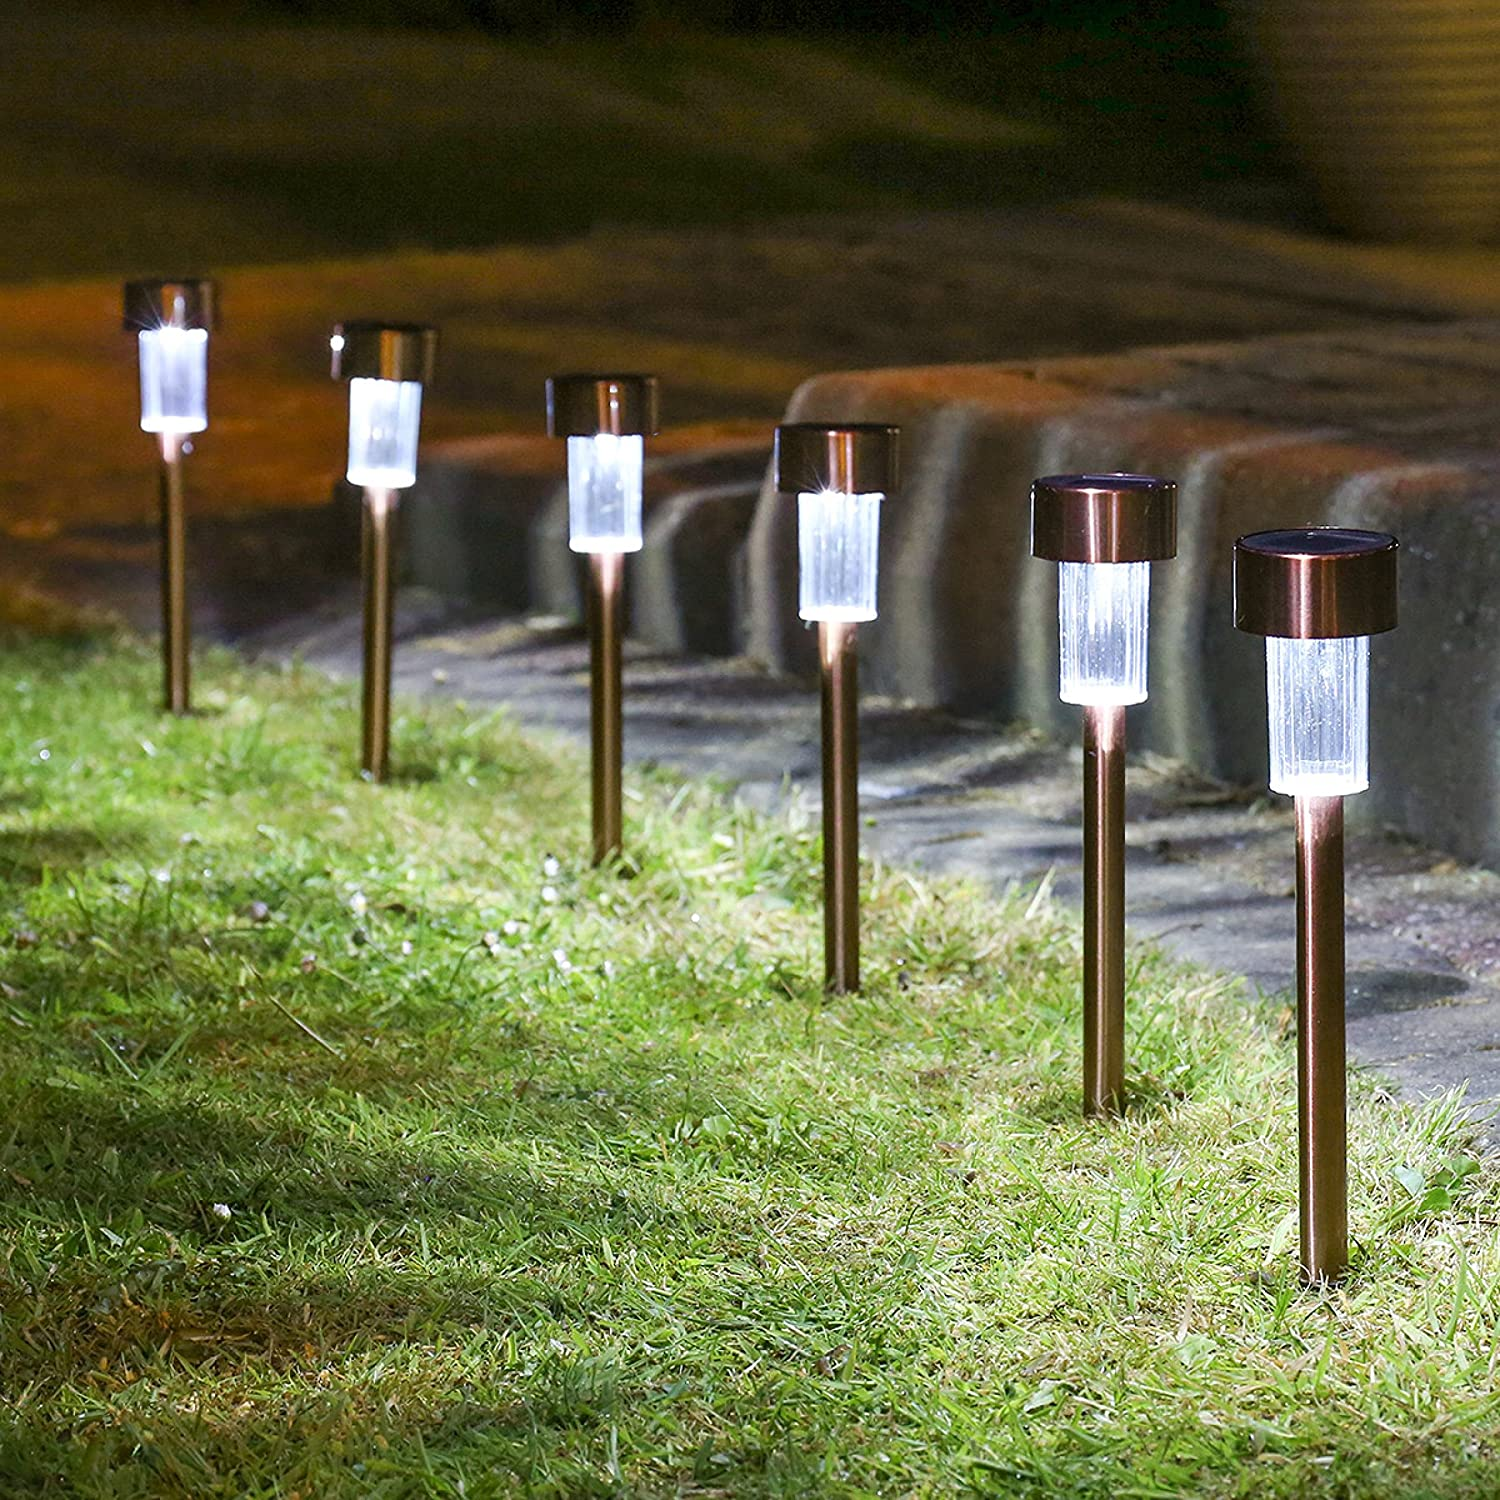 ... Solar Lights Outdoor, Stainless Steel, Solar Light, Landscape Lighting,  Solar Pathway Lights, For Lawn, Patio, Yard, Walkway, Driveway, Pathway,  Garden, ...